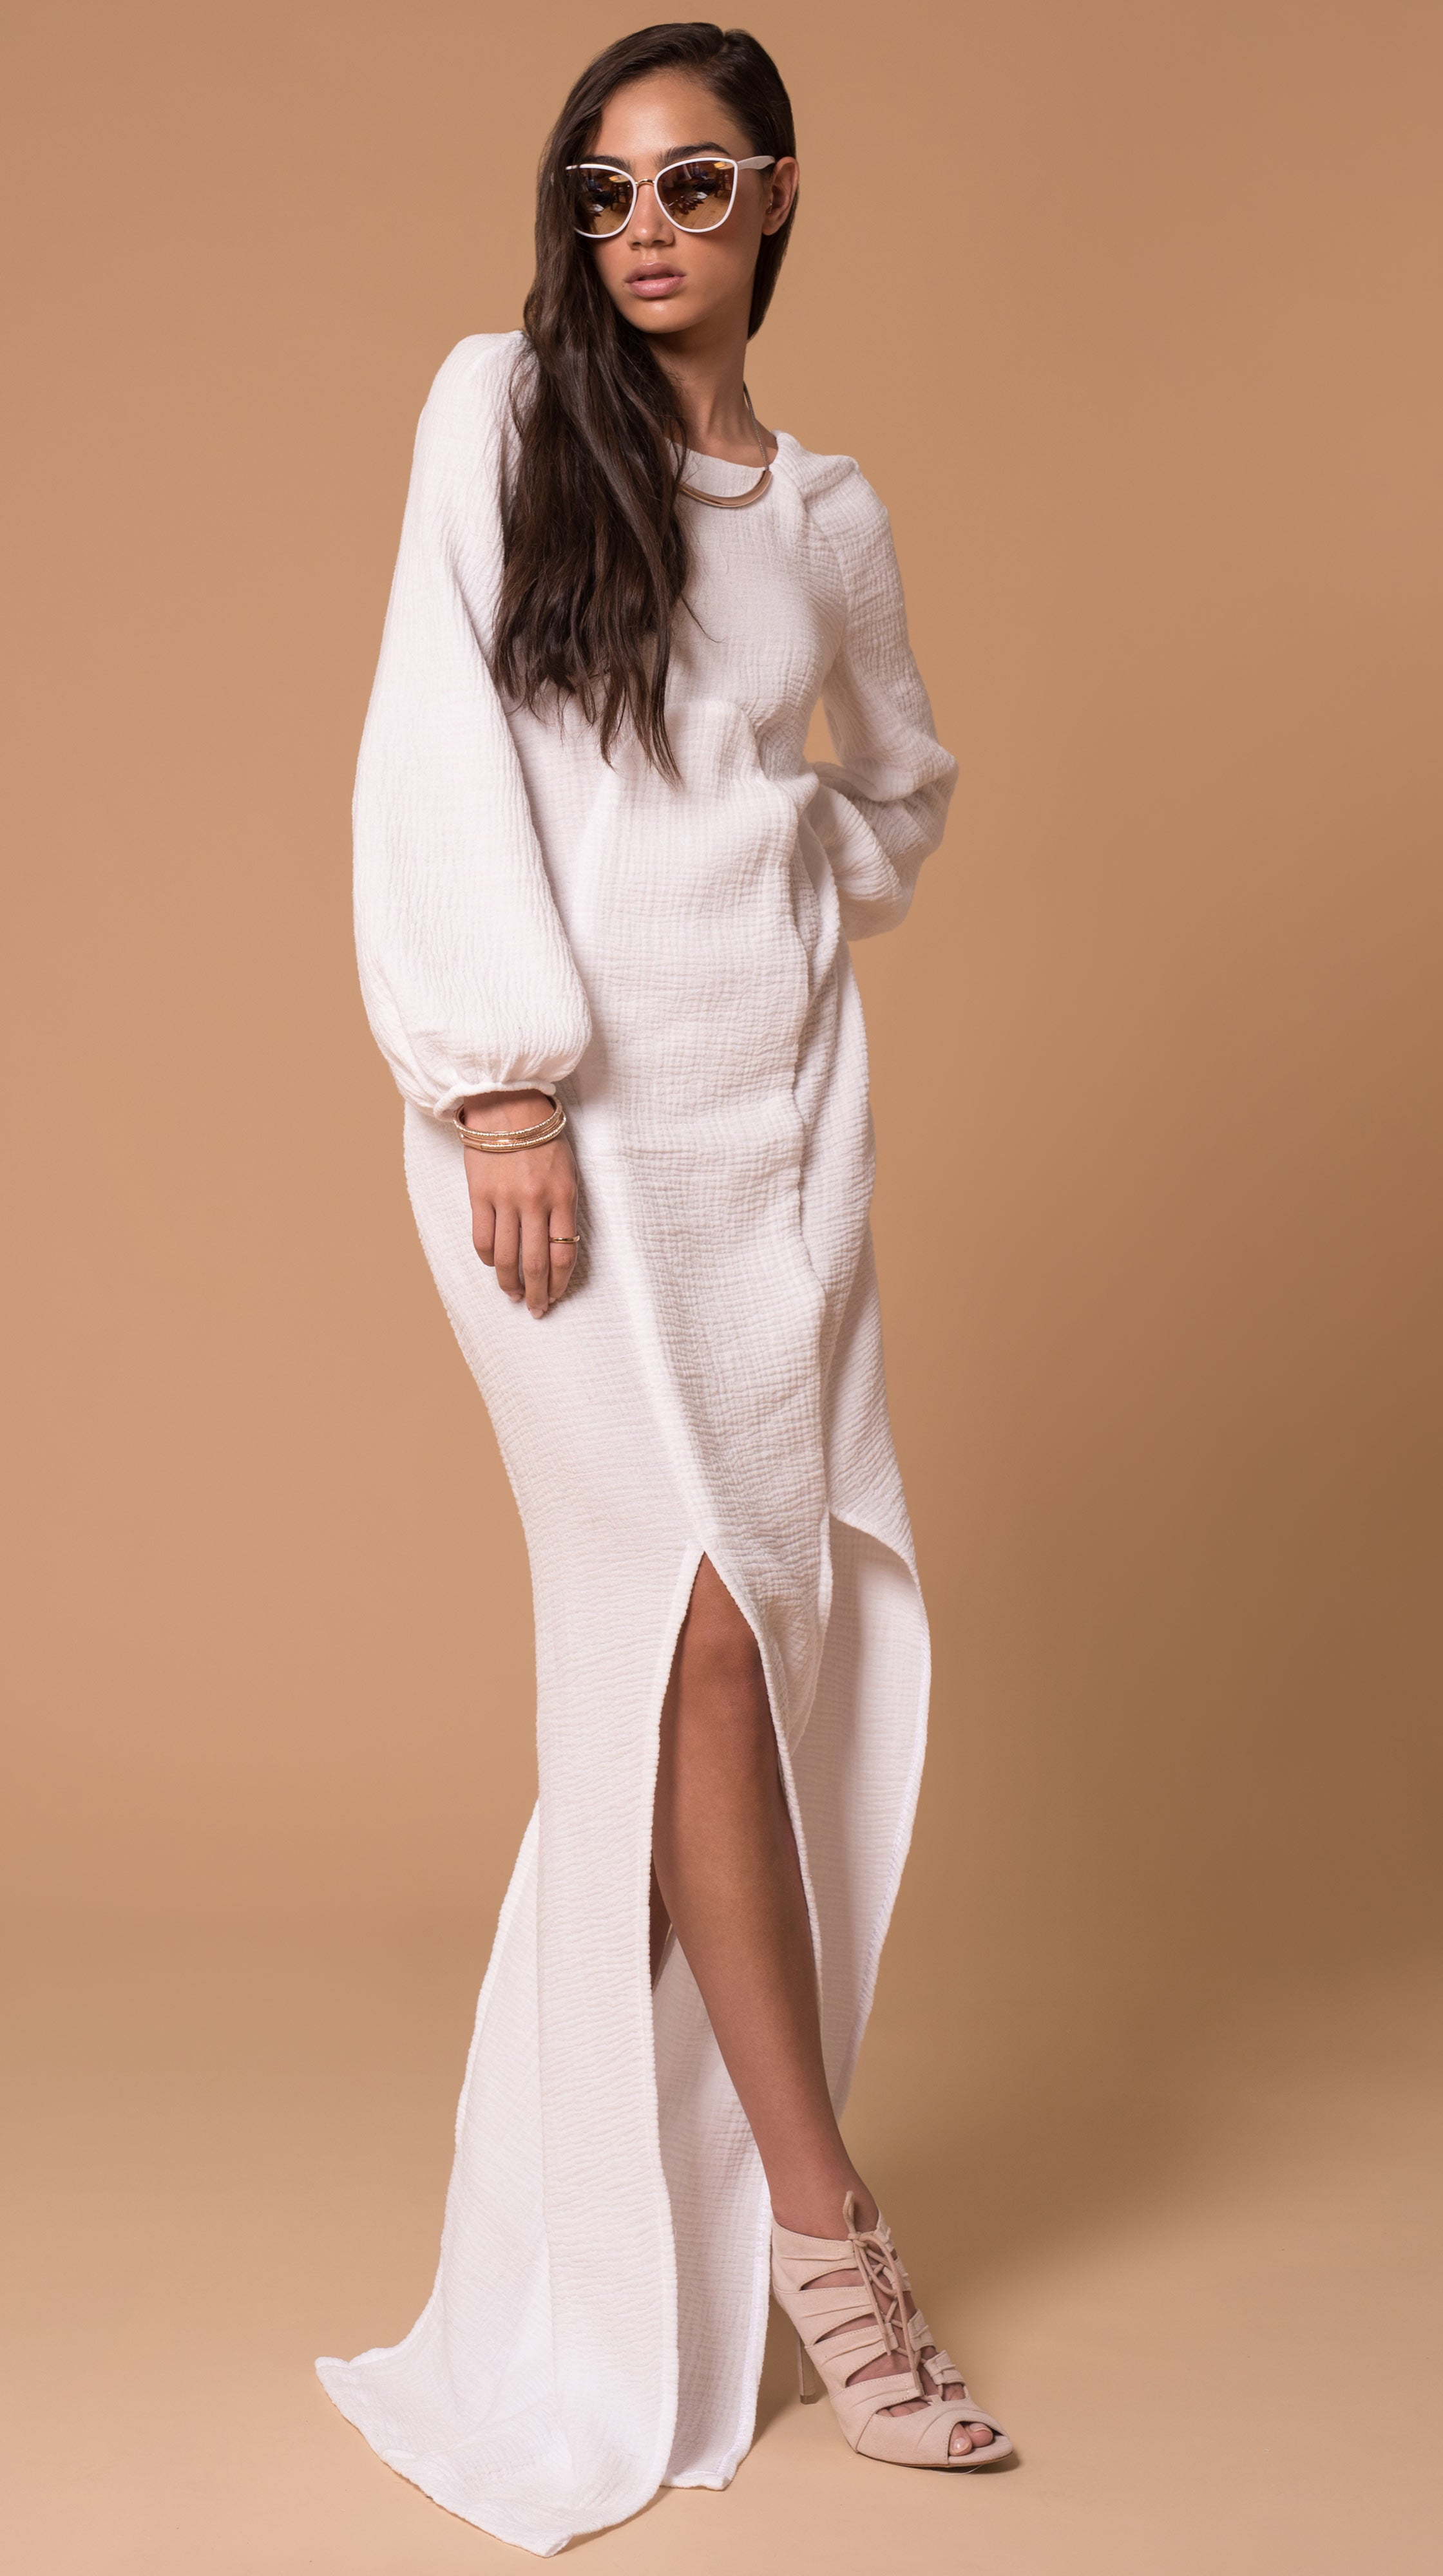 White Santorini Cotton Gauze Long Sleeve Maxi Dress by VARYFORM Made Sustainable in USA | Nineteenth Amendment